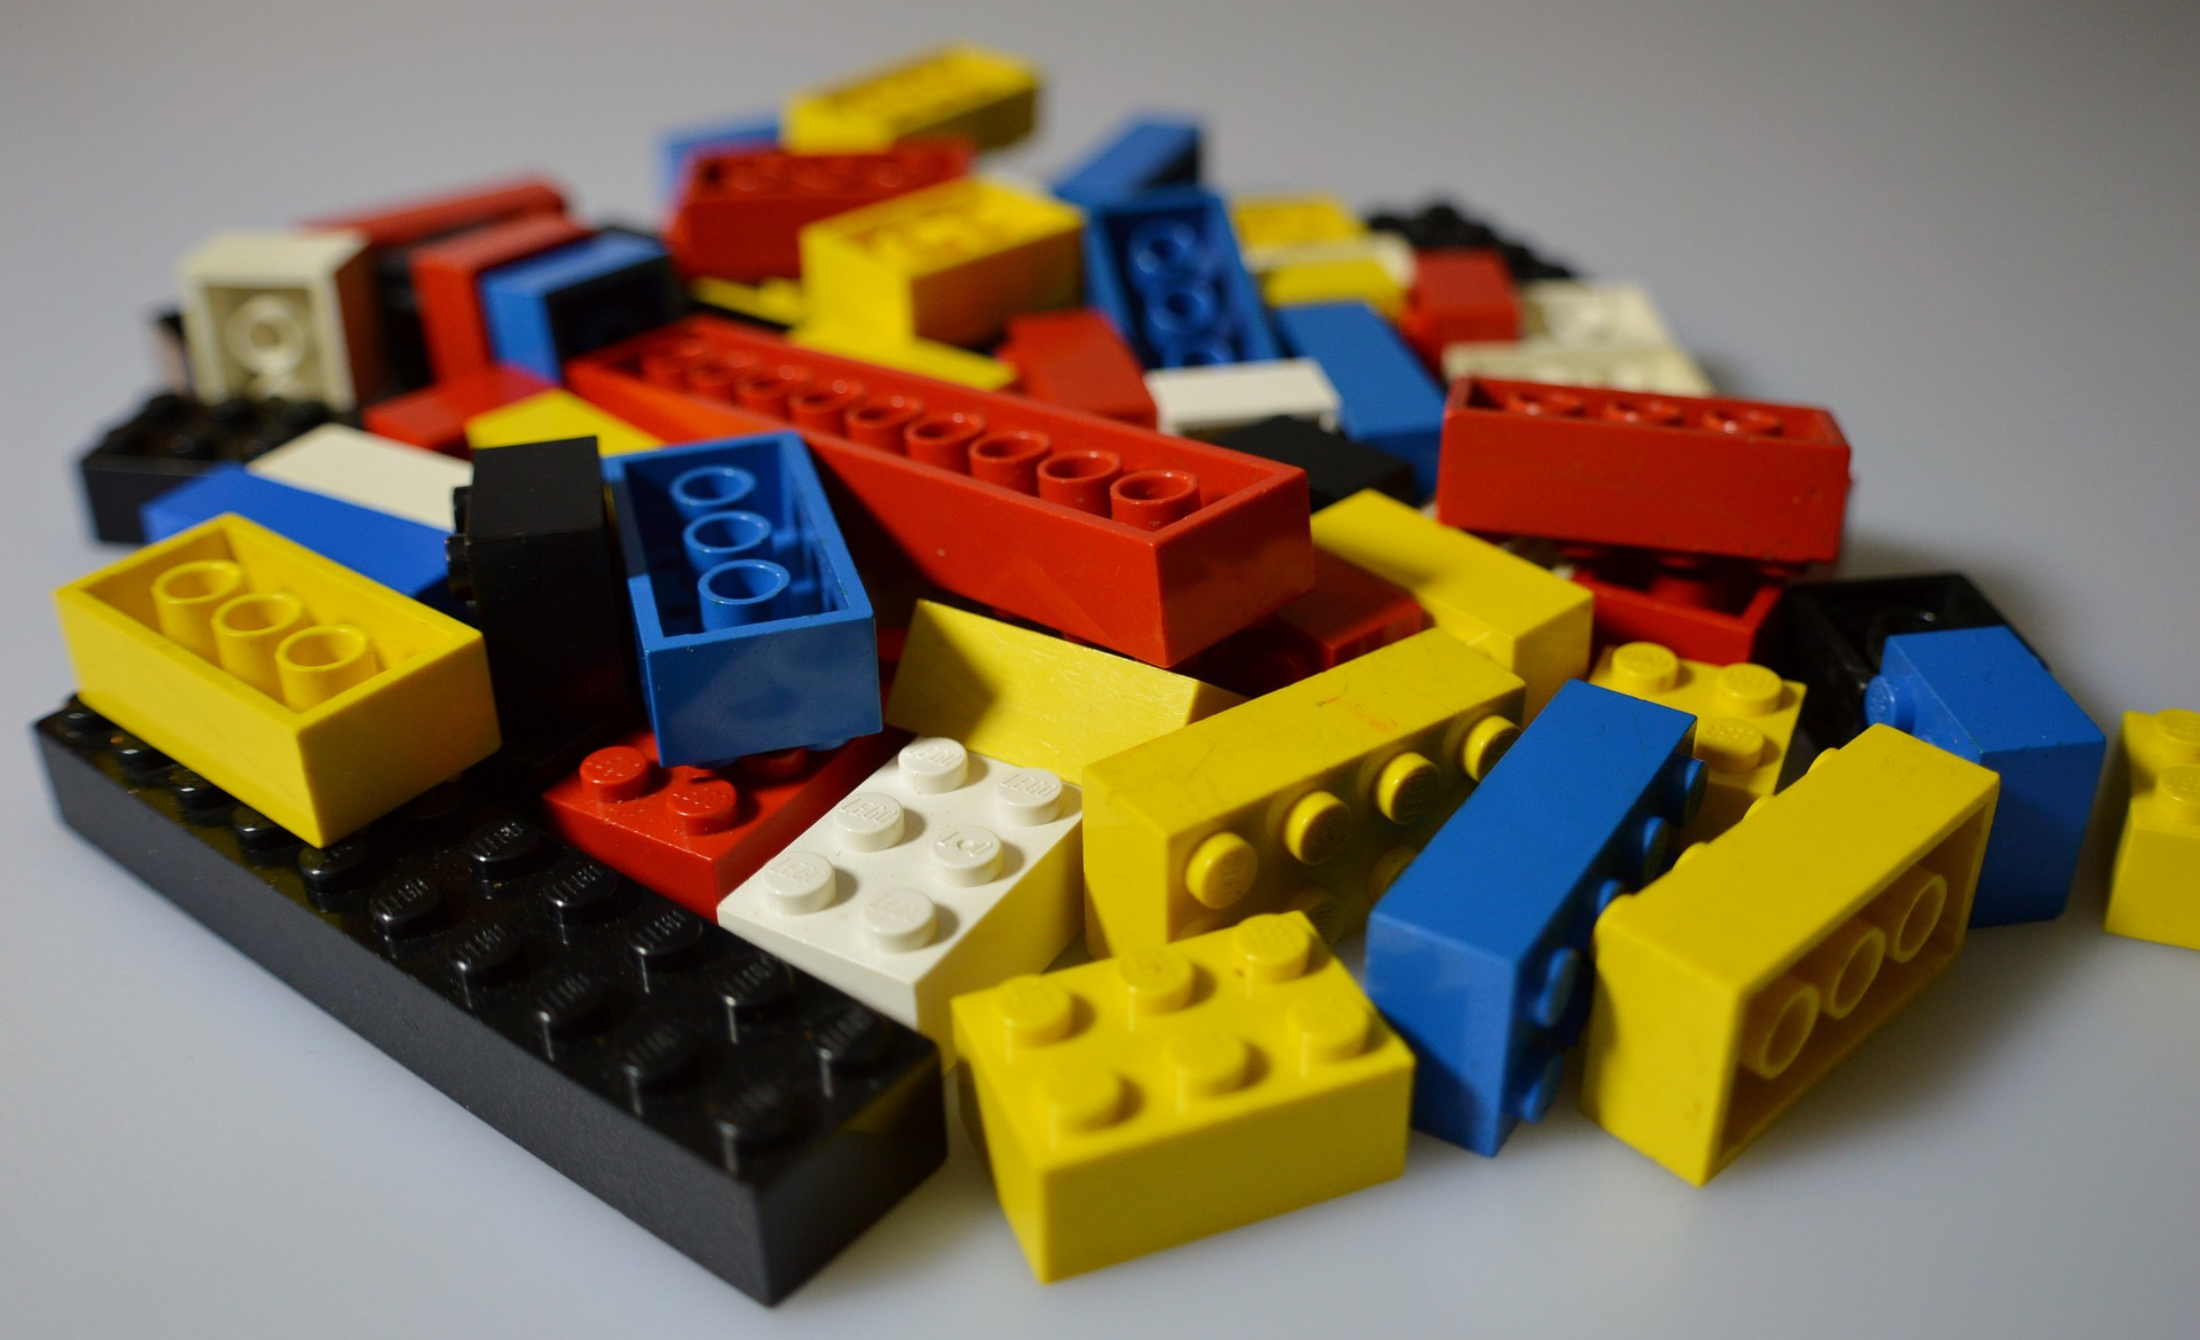 HOW TO PREPARE STUDENTS FOR THE FUTURE WITH LEGO